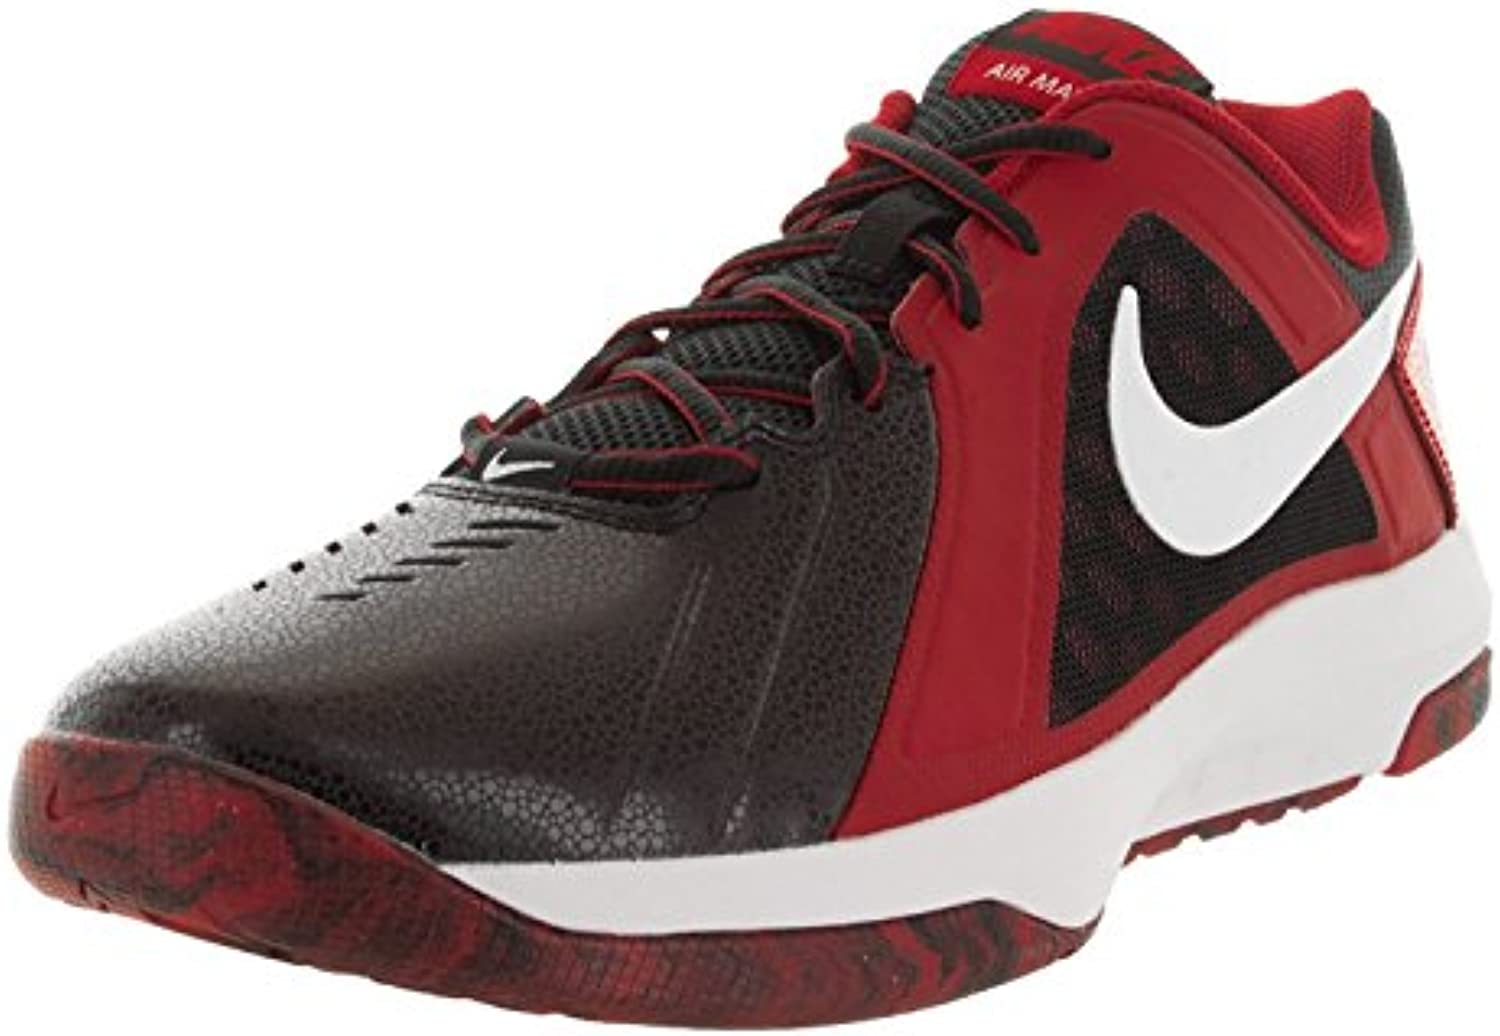 Nike Men's Air Mavin Low Basketball Shoe  Rot  42 D(M) EU/7.5 D(M) UK